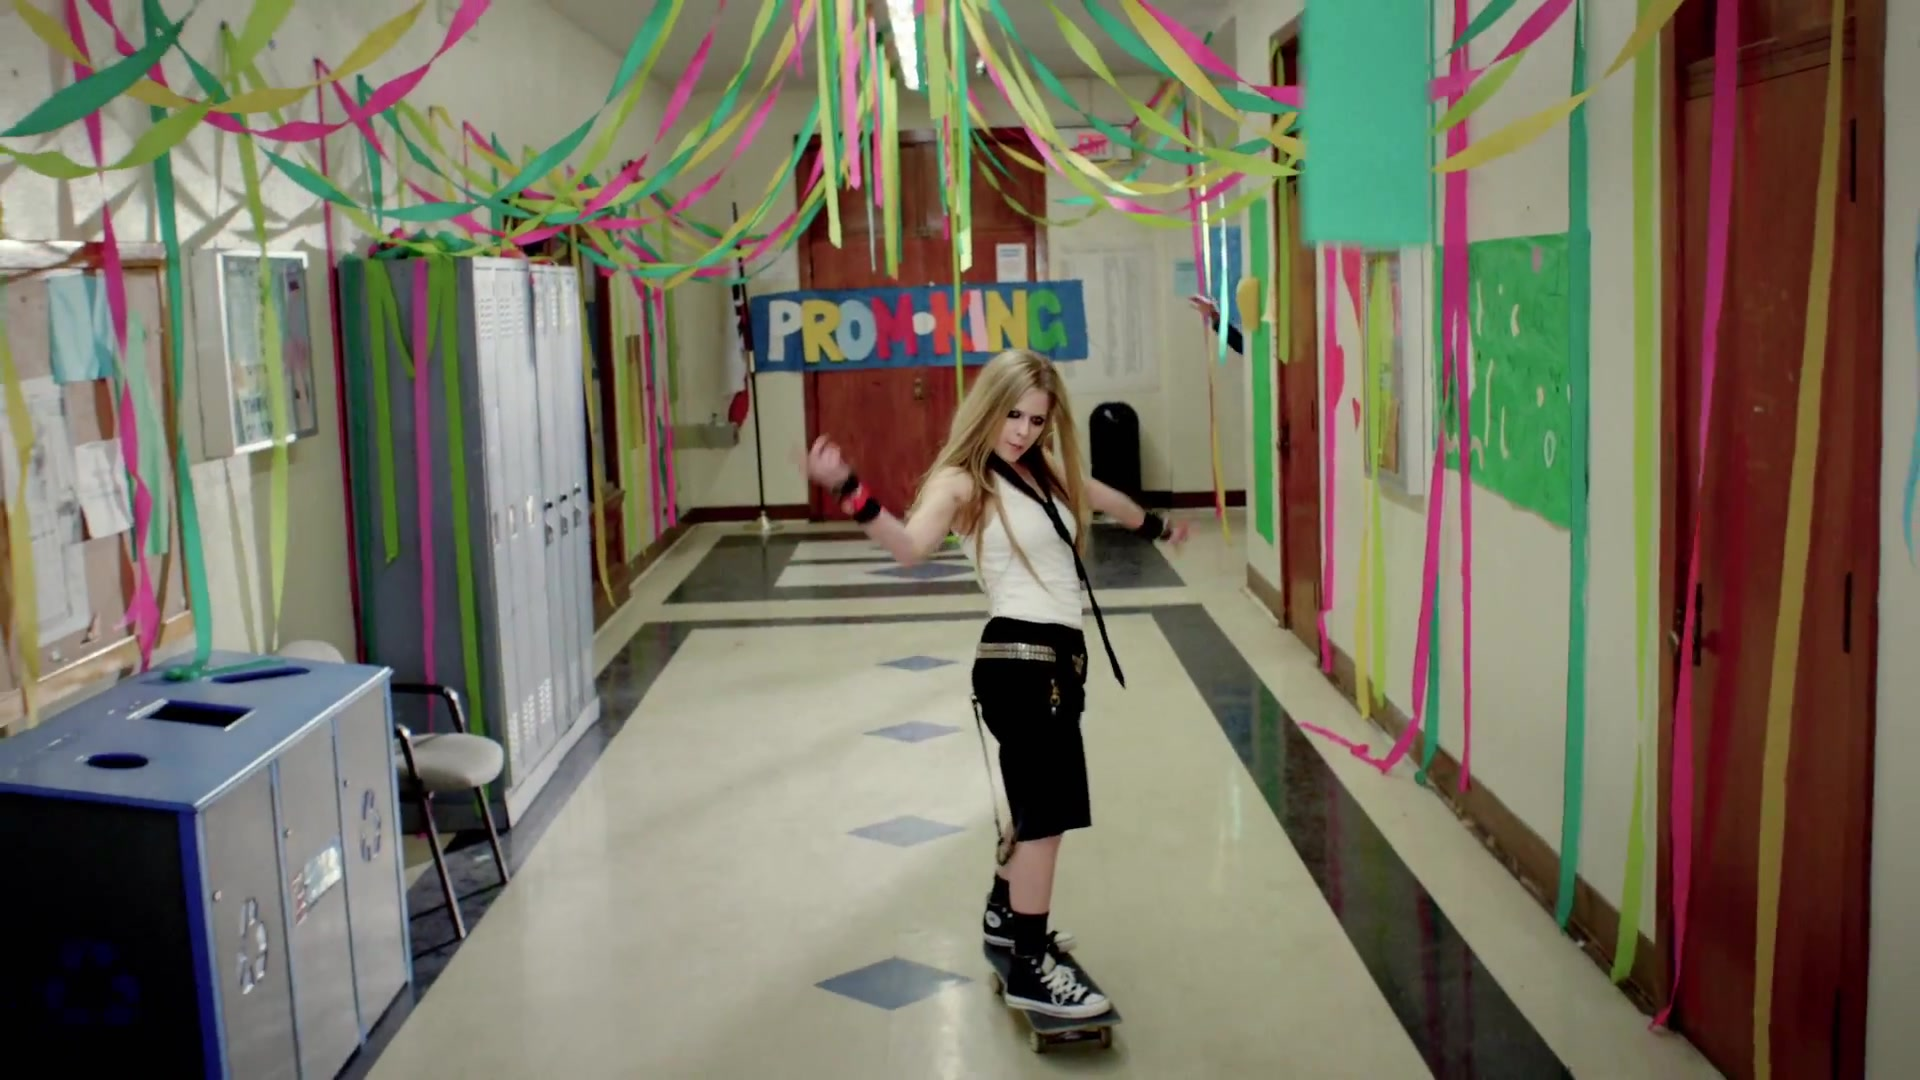 Never grow up avril mp3 download